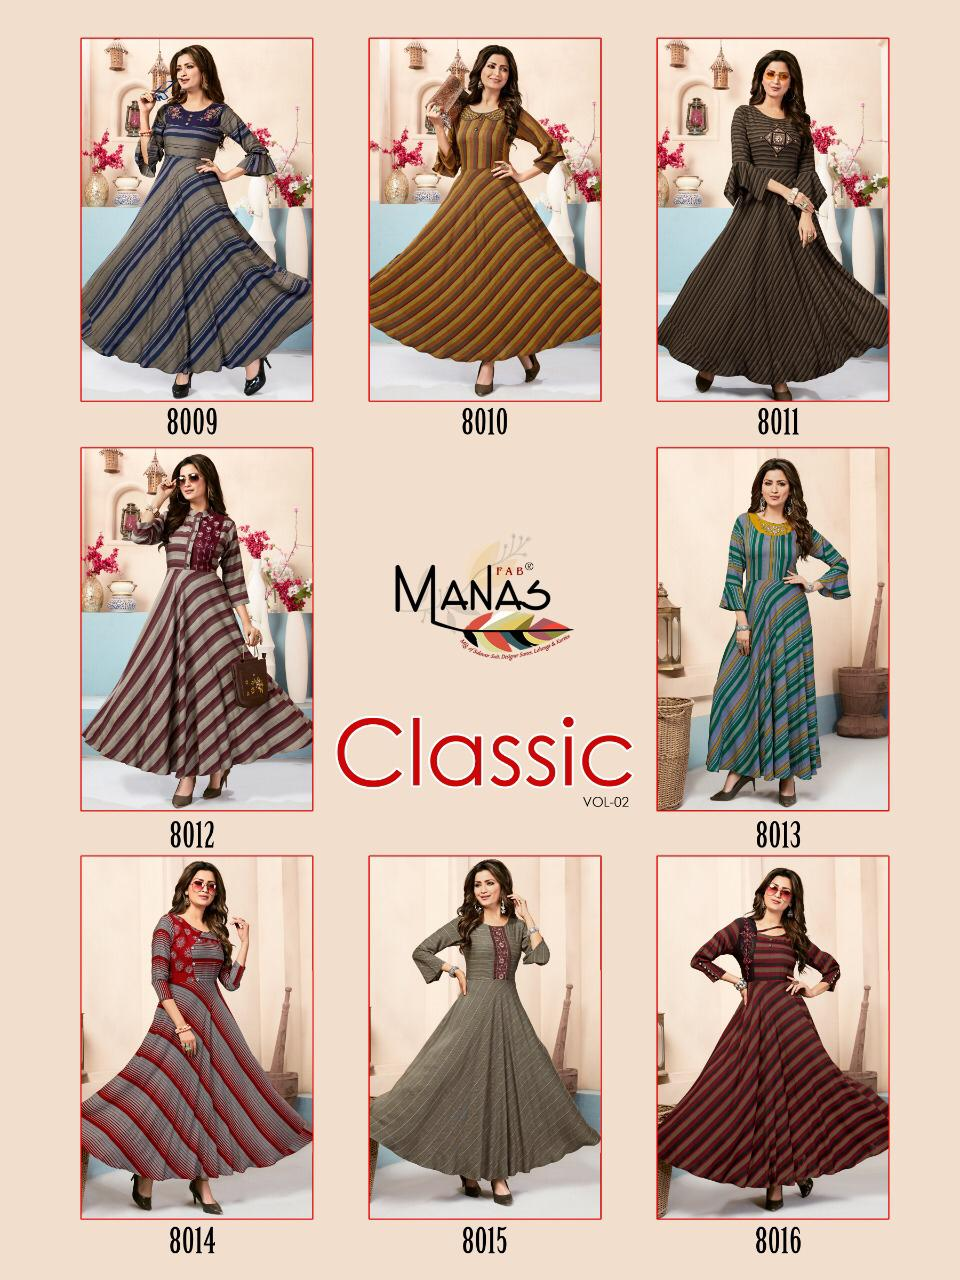 Manas Classic Vol 2 collection 8